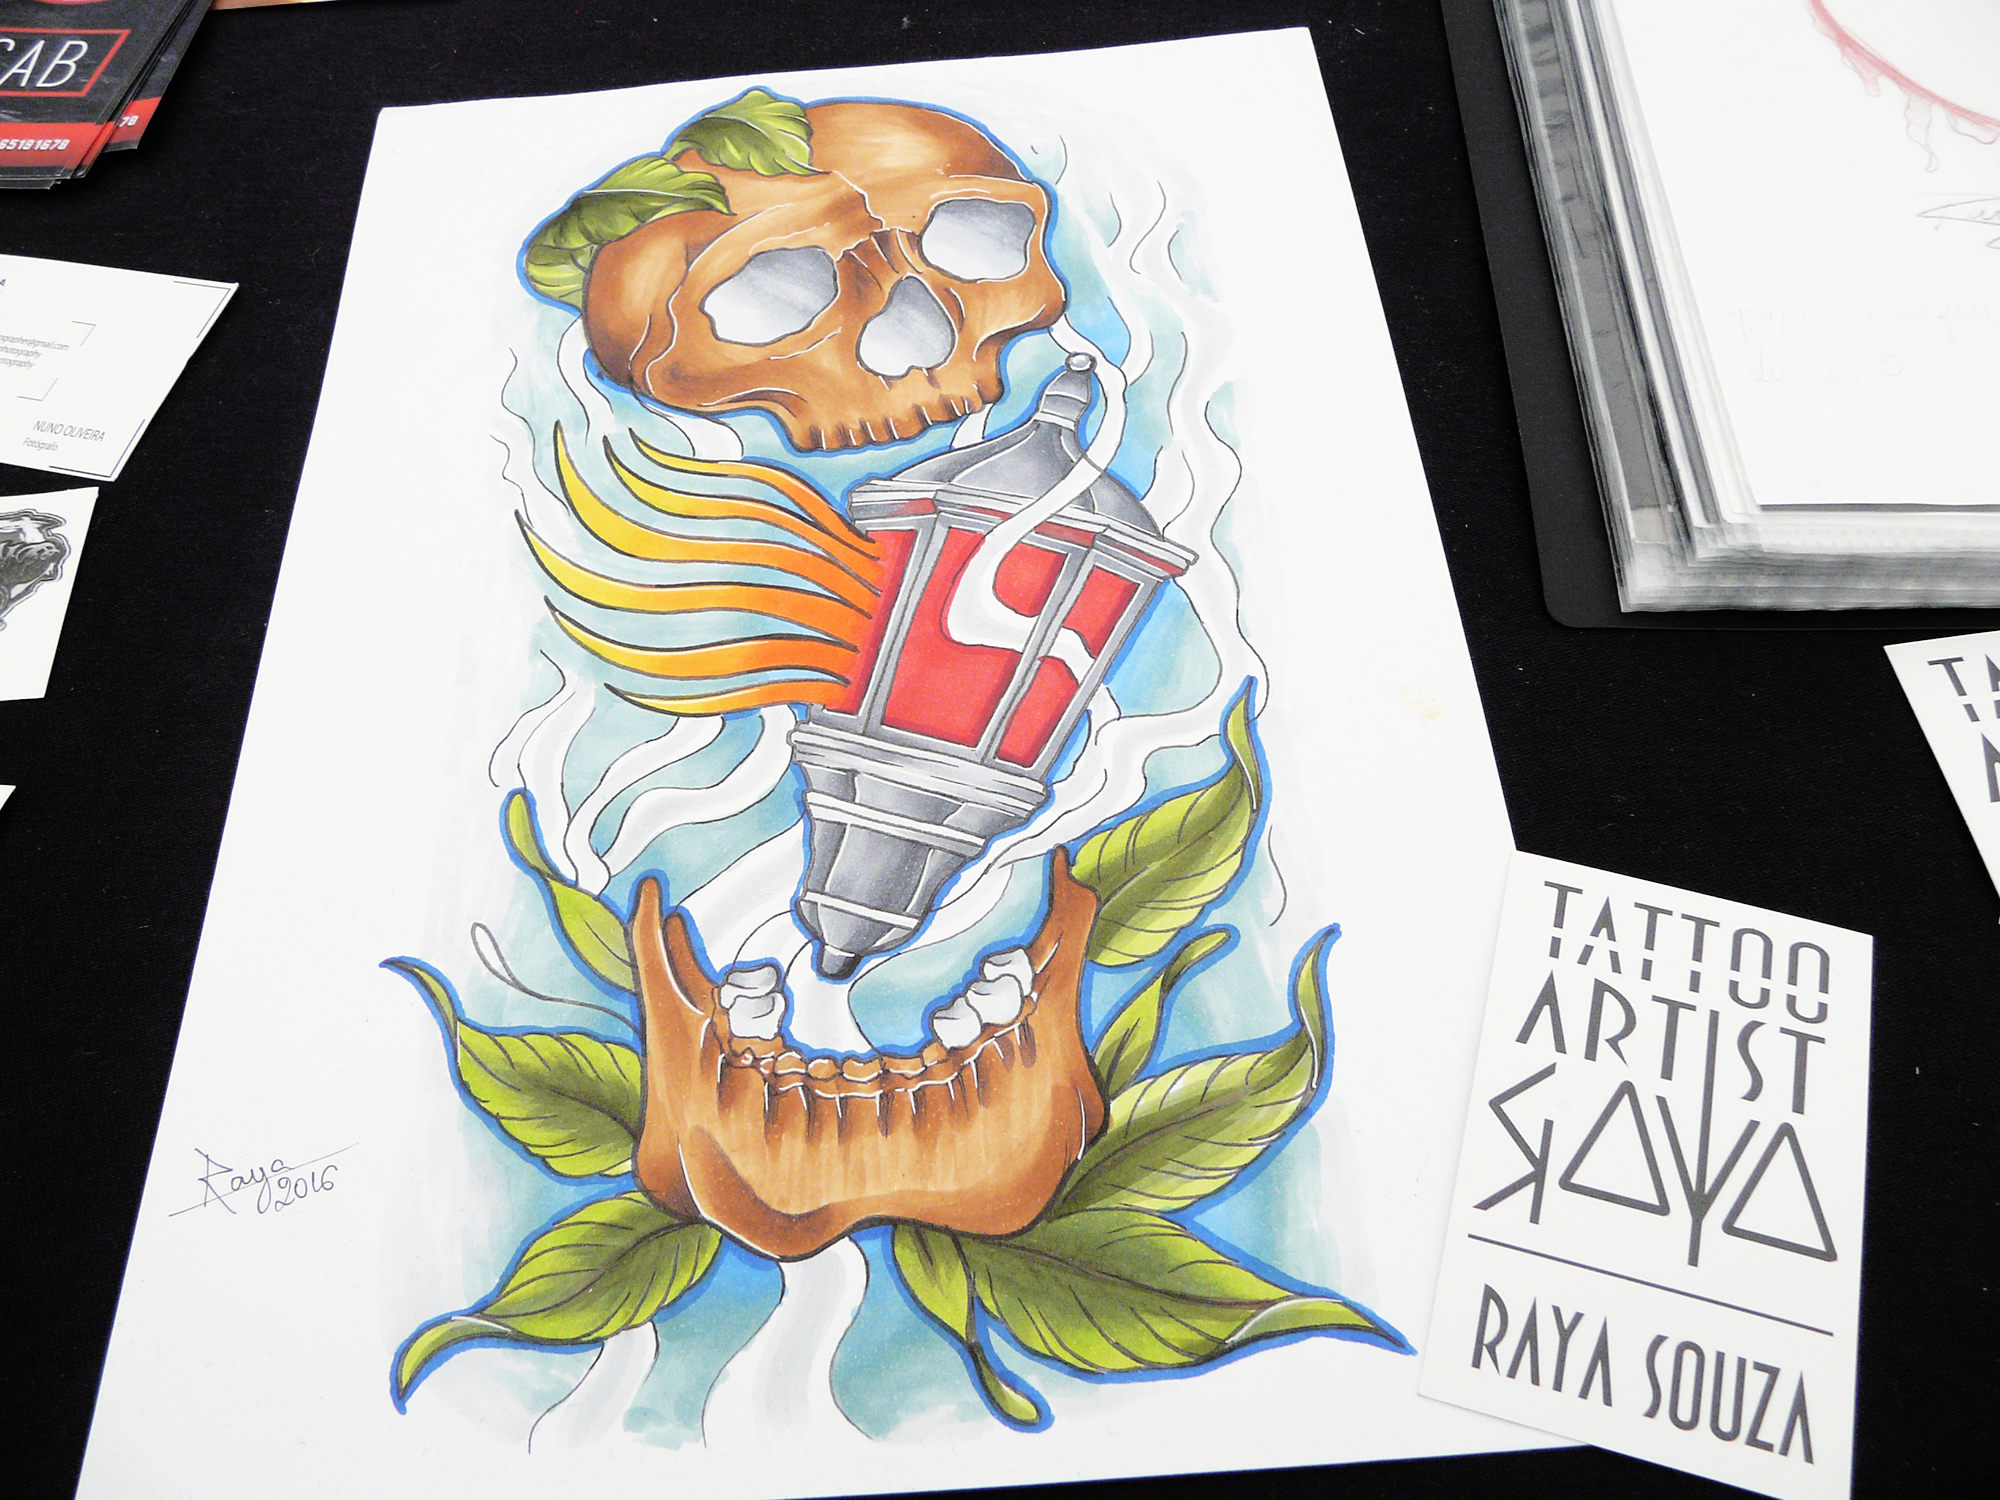 An Interview with Raya Souza, a Rising Star on the PT Tattoo Scene